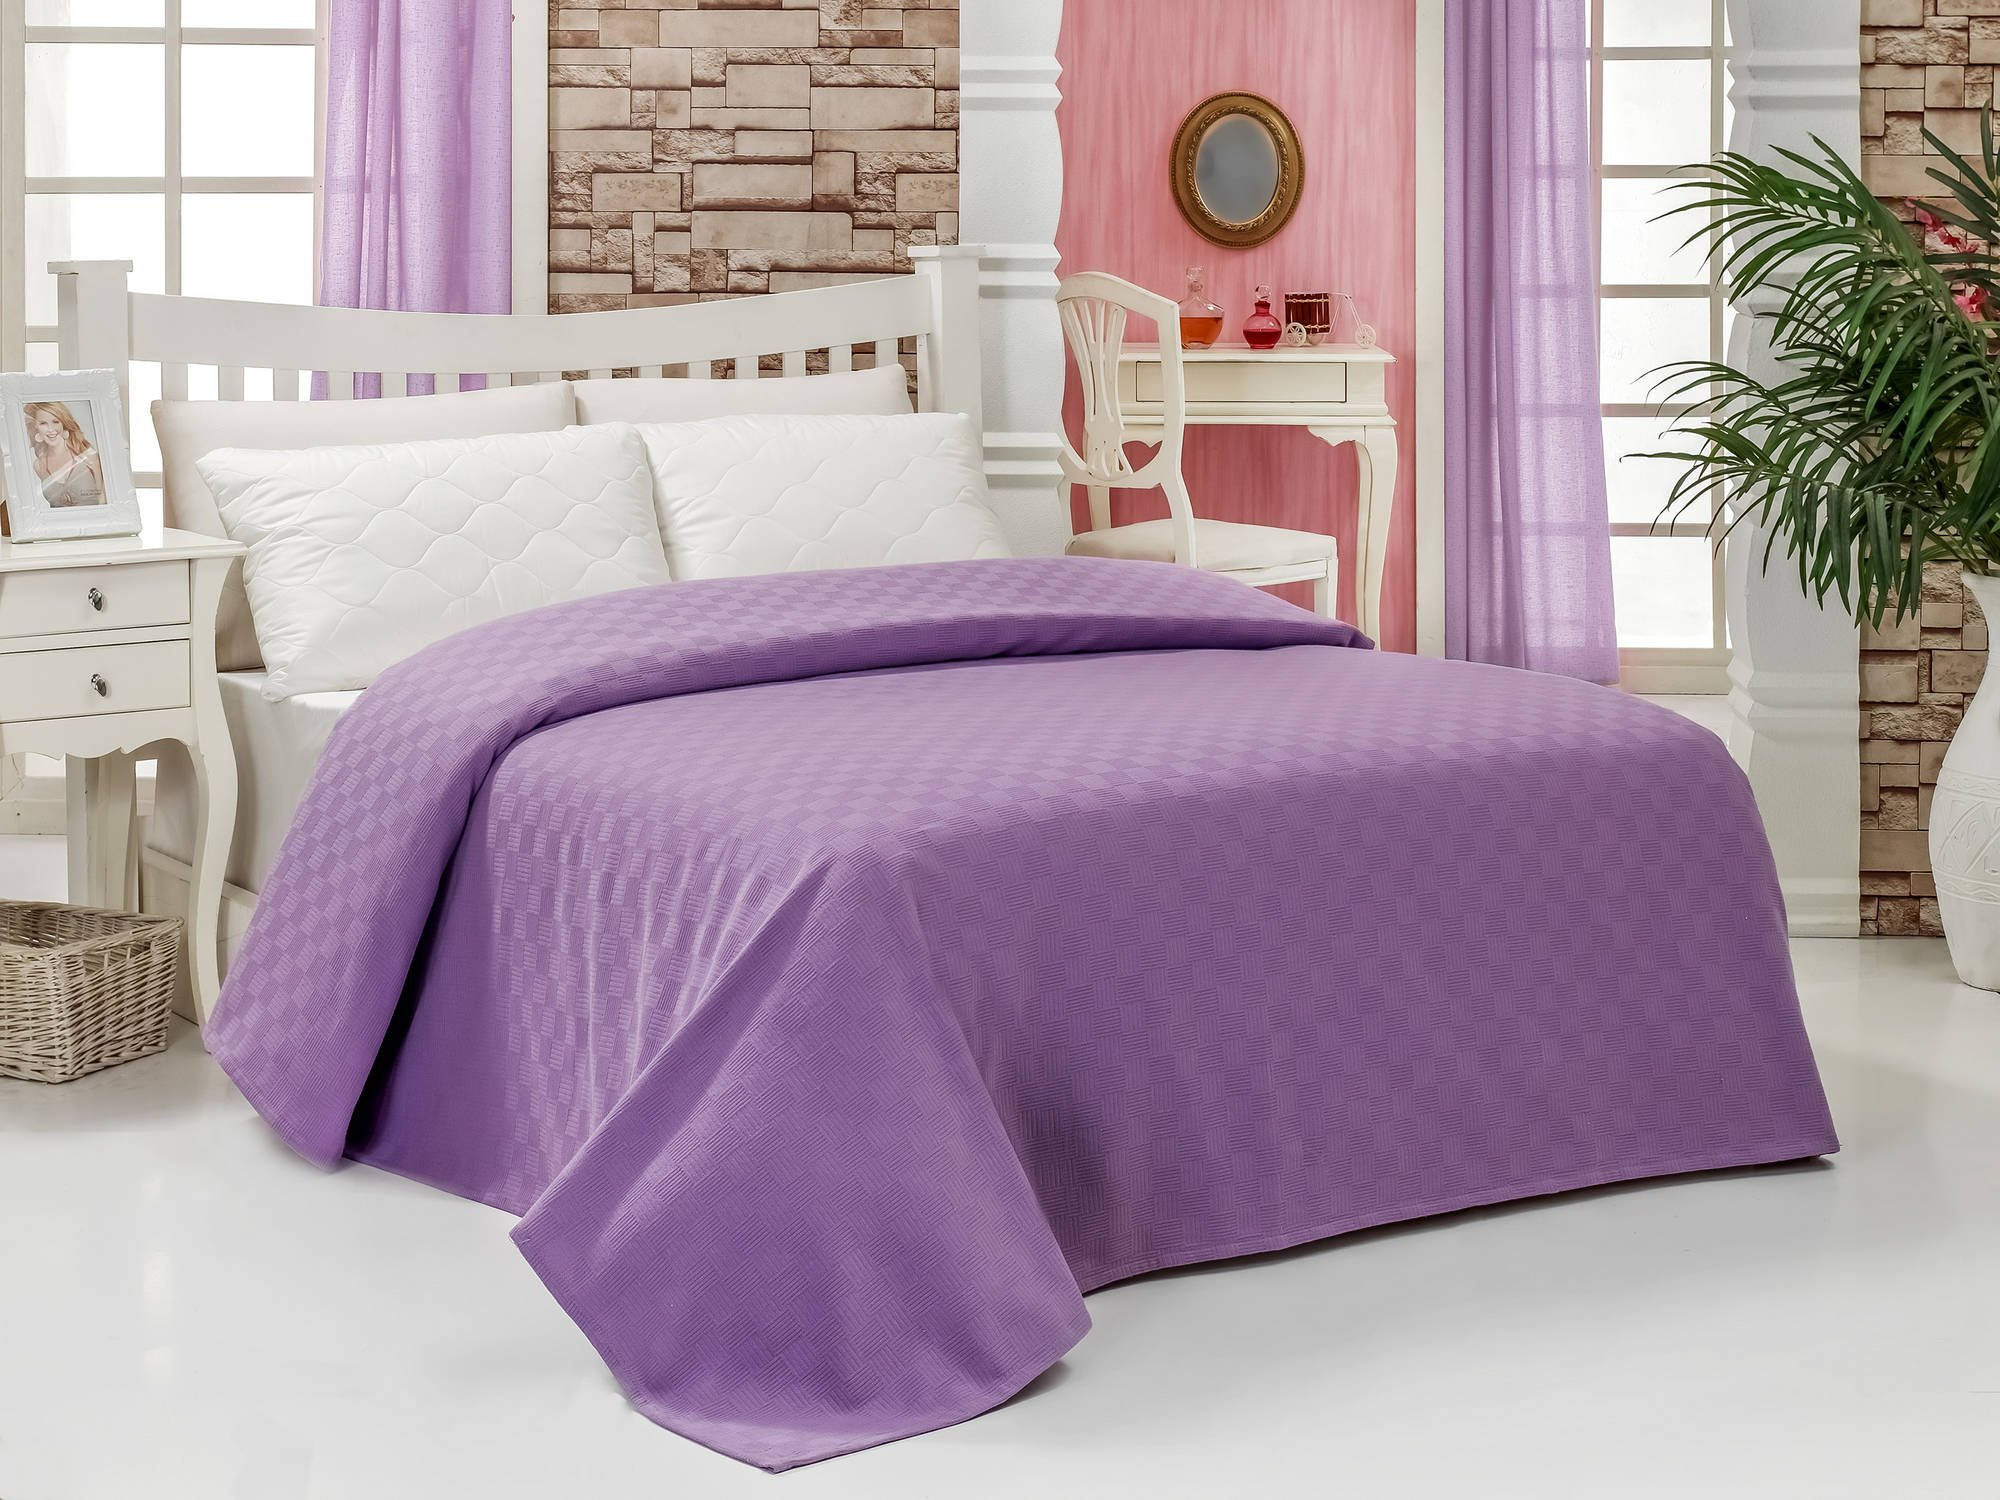 LaModaHome Colors Coverlet, 100% Cotton - Little Square Patterned Purple Coverlet - Size (78.7'' x 94.5'') for Full and Double Bed